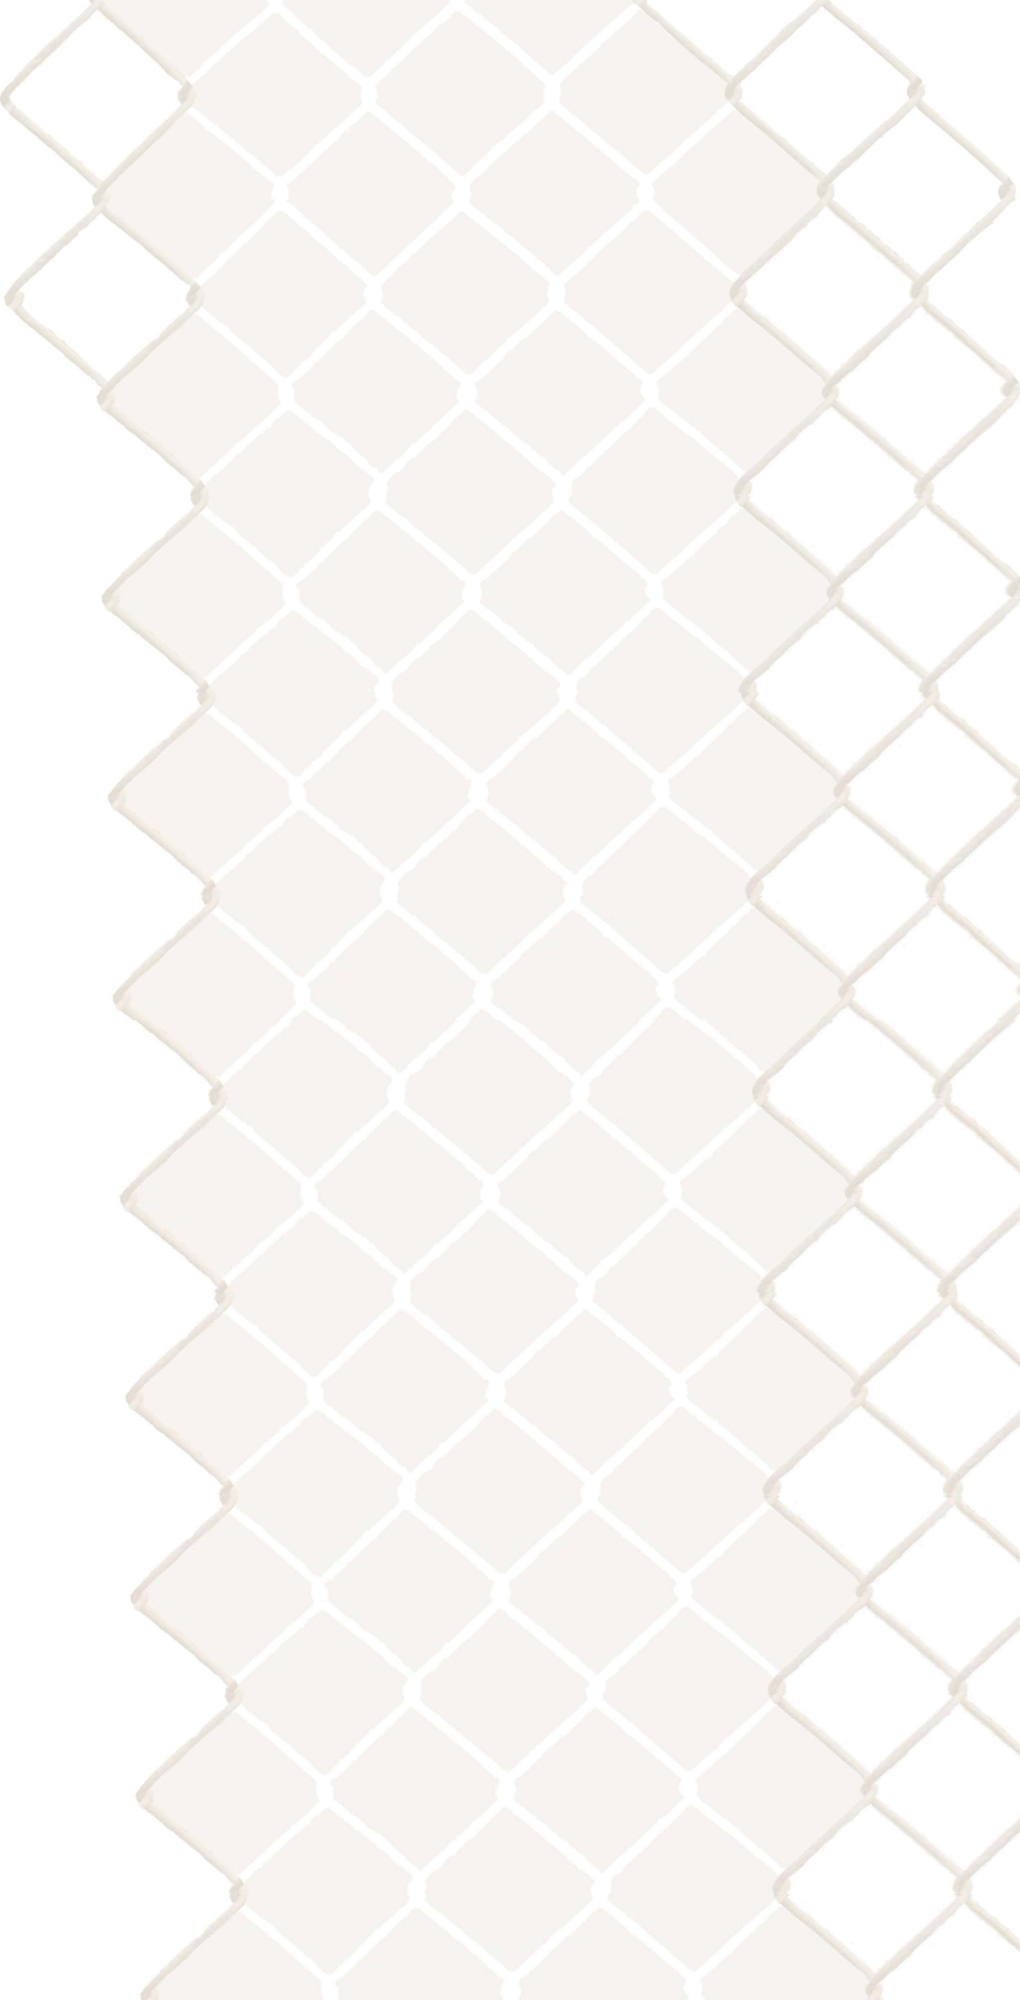 fence transparency